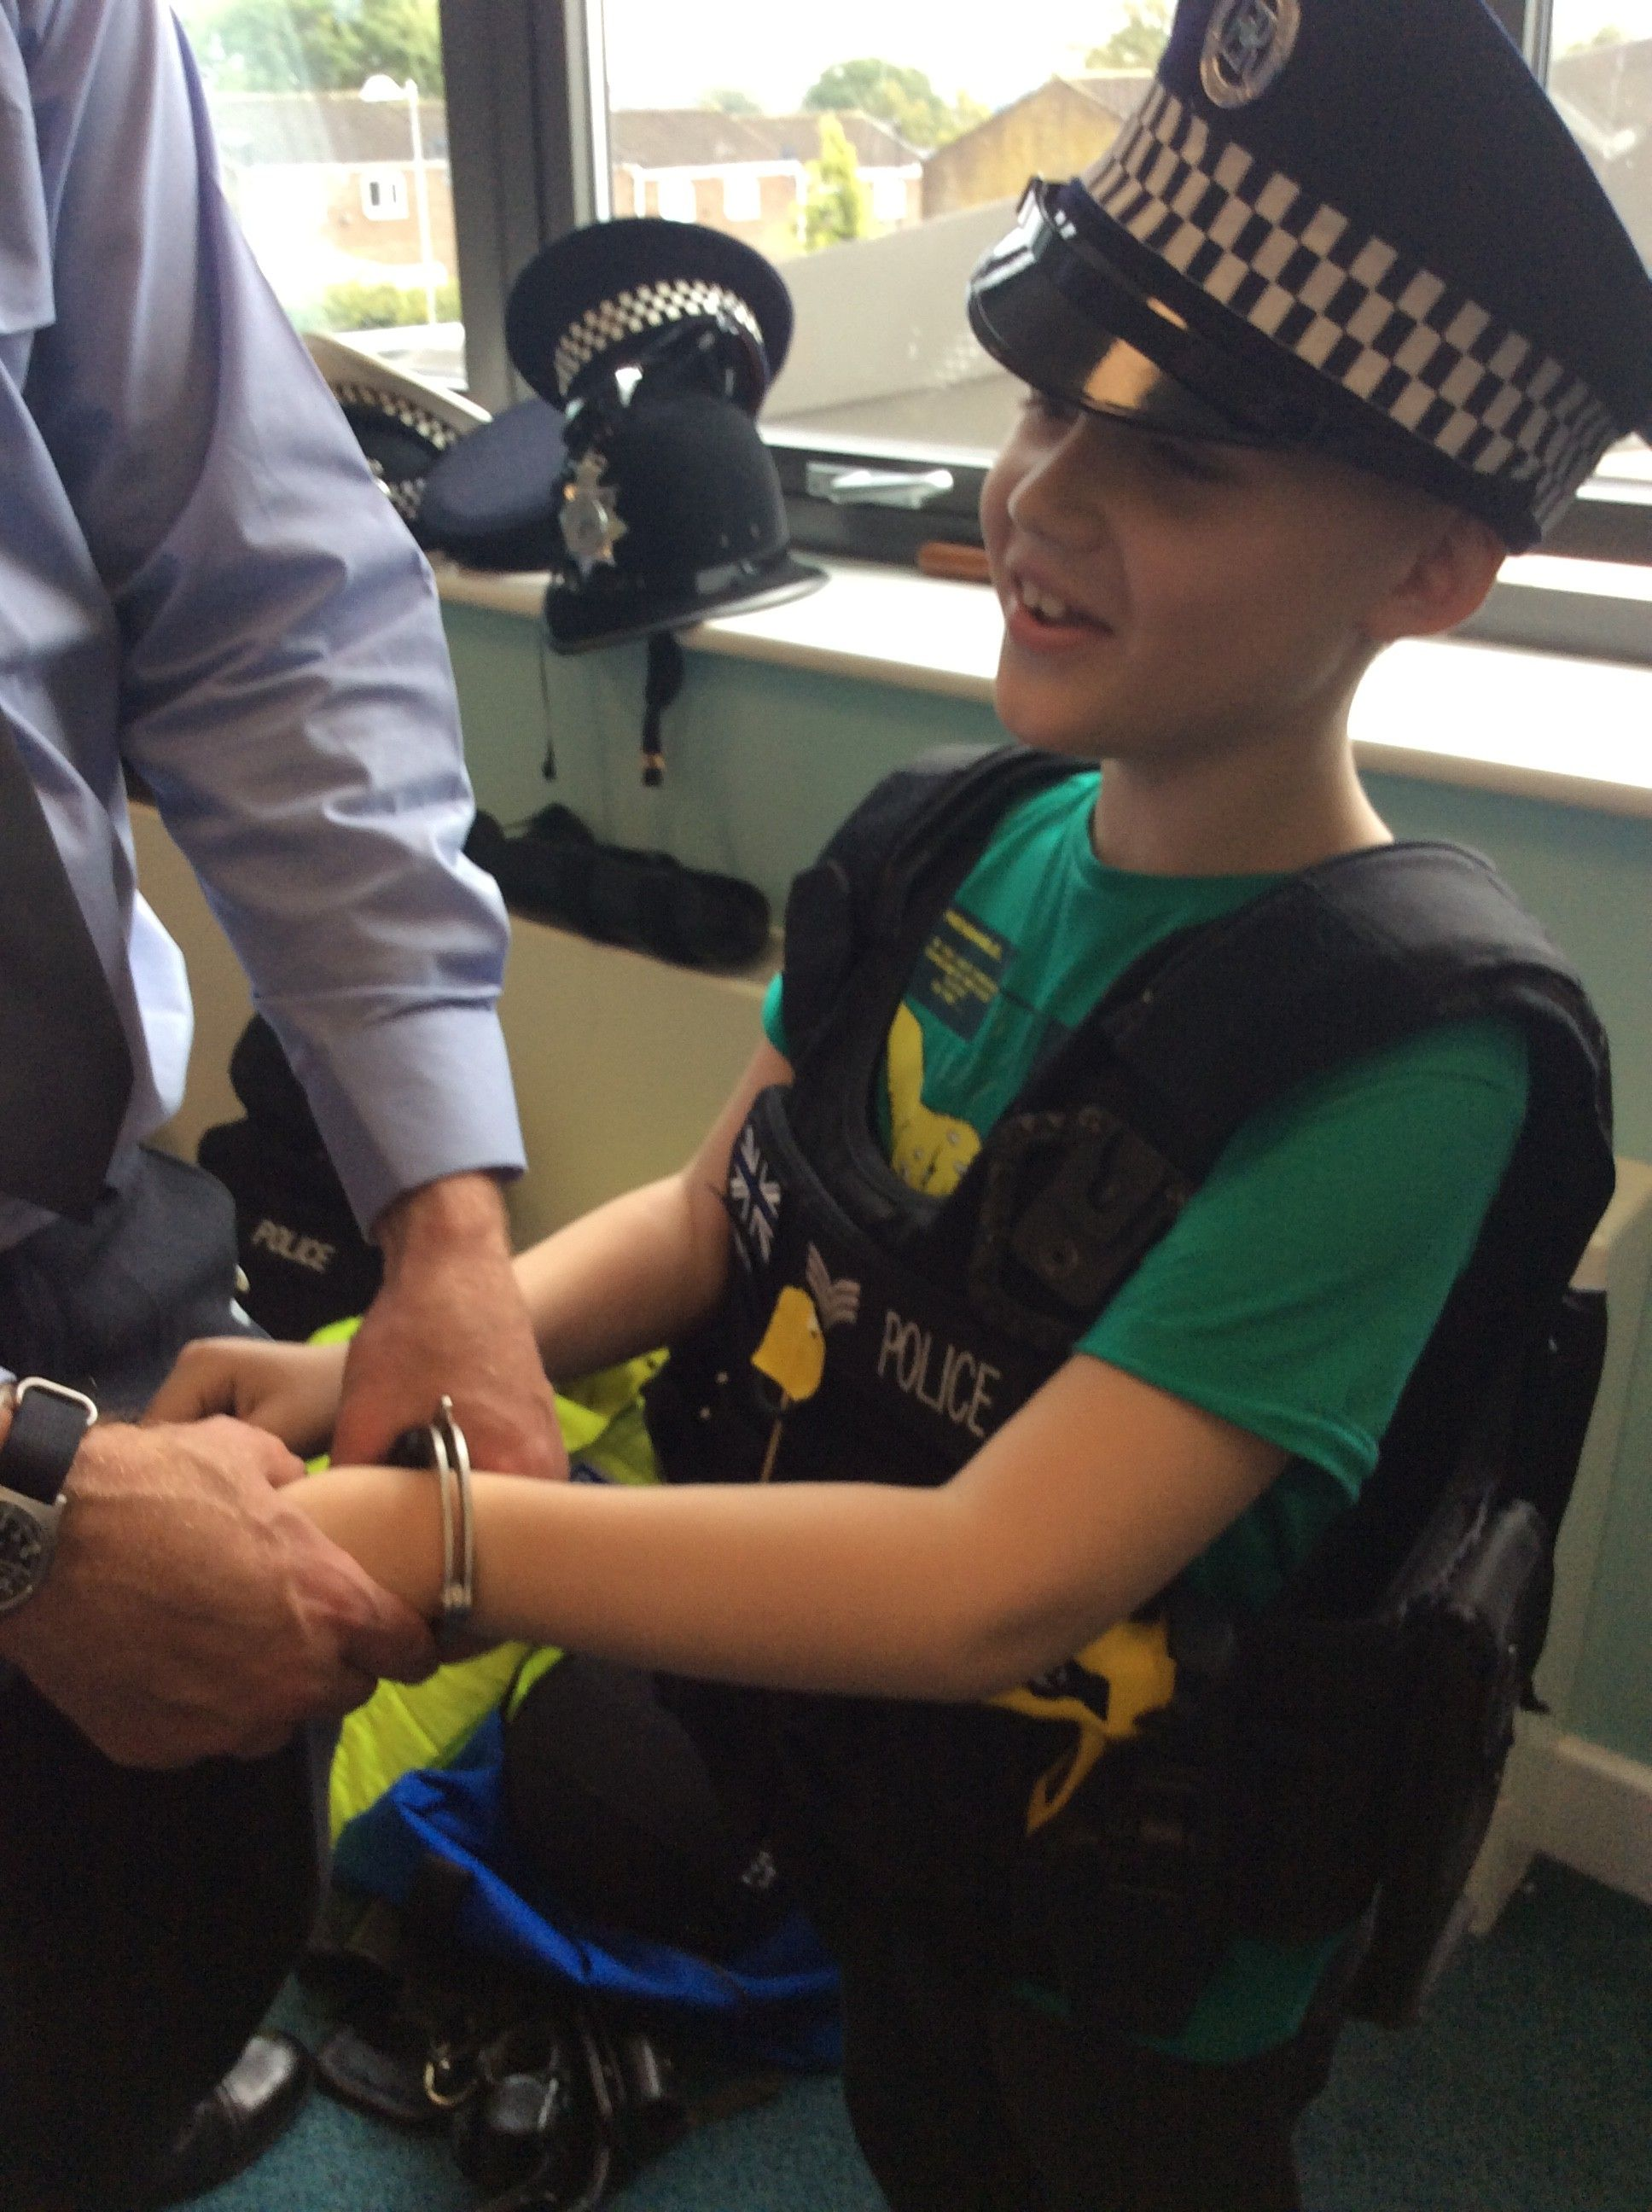 Police Officer Visits Thomas Bewick